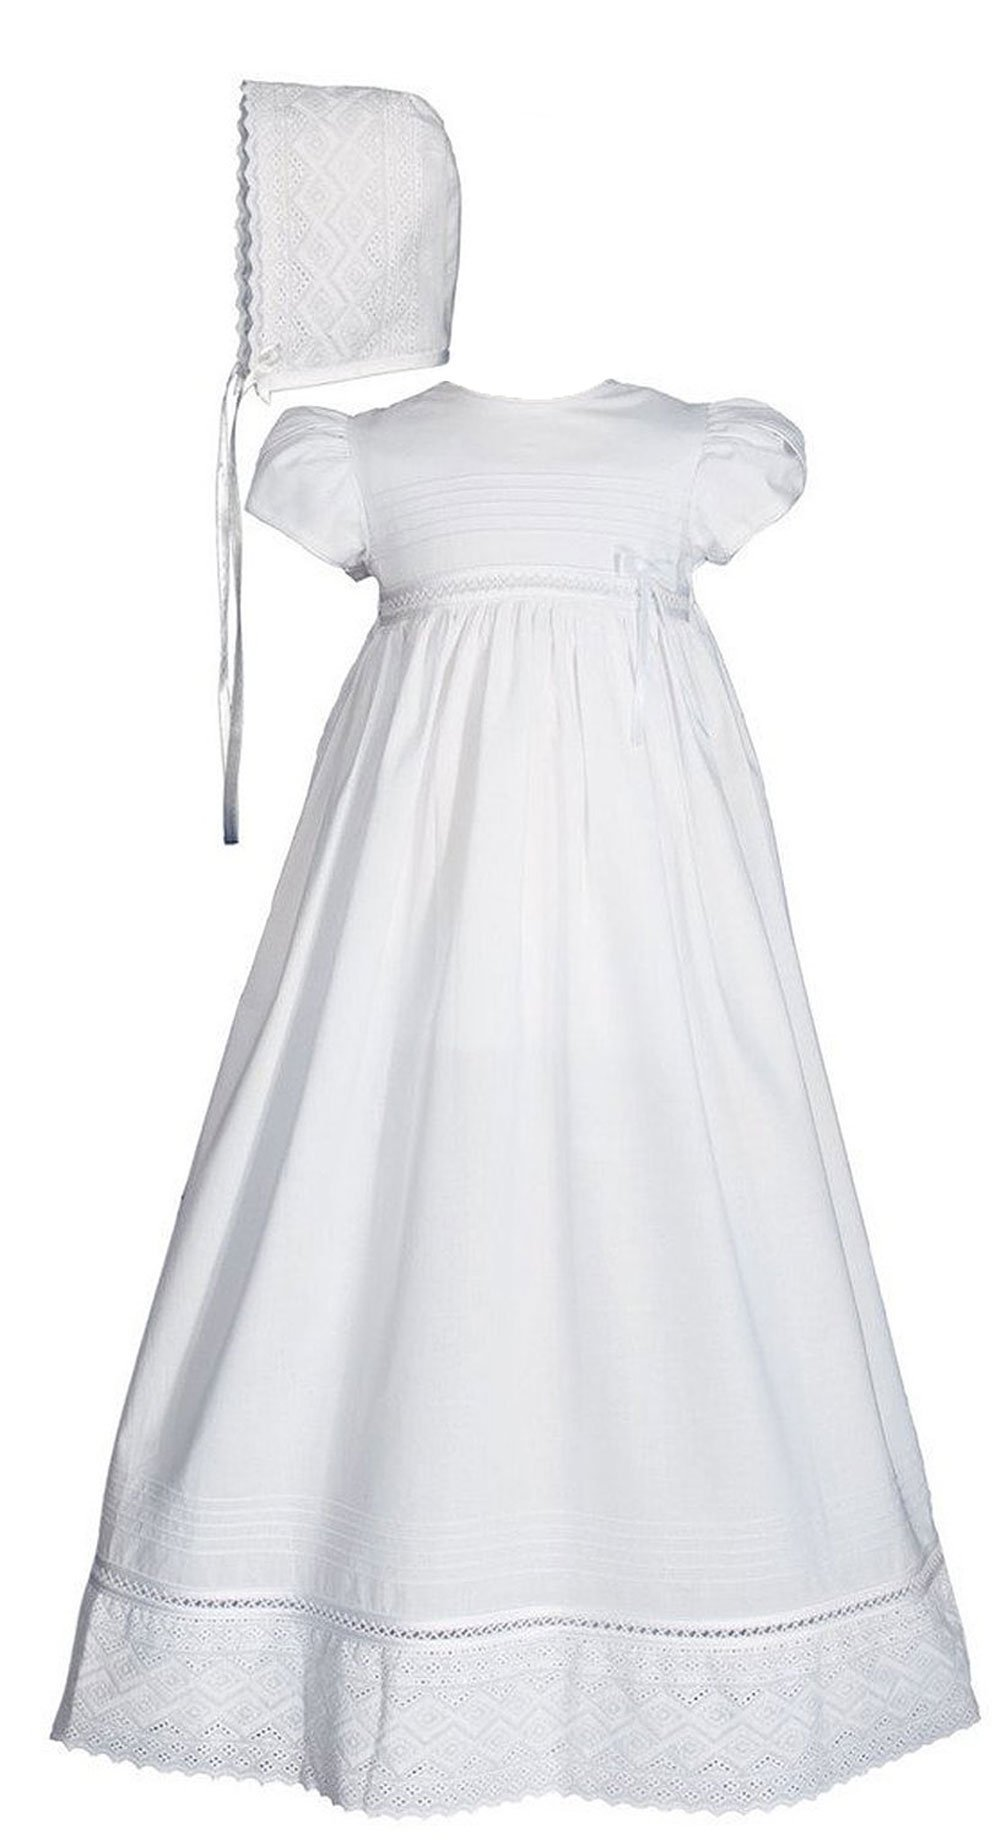 30'' Girls White Cotton Dress Christening Gown Baptism Gown with Lace 3M